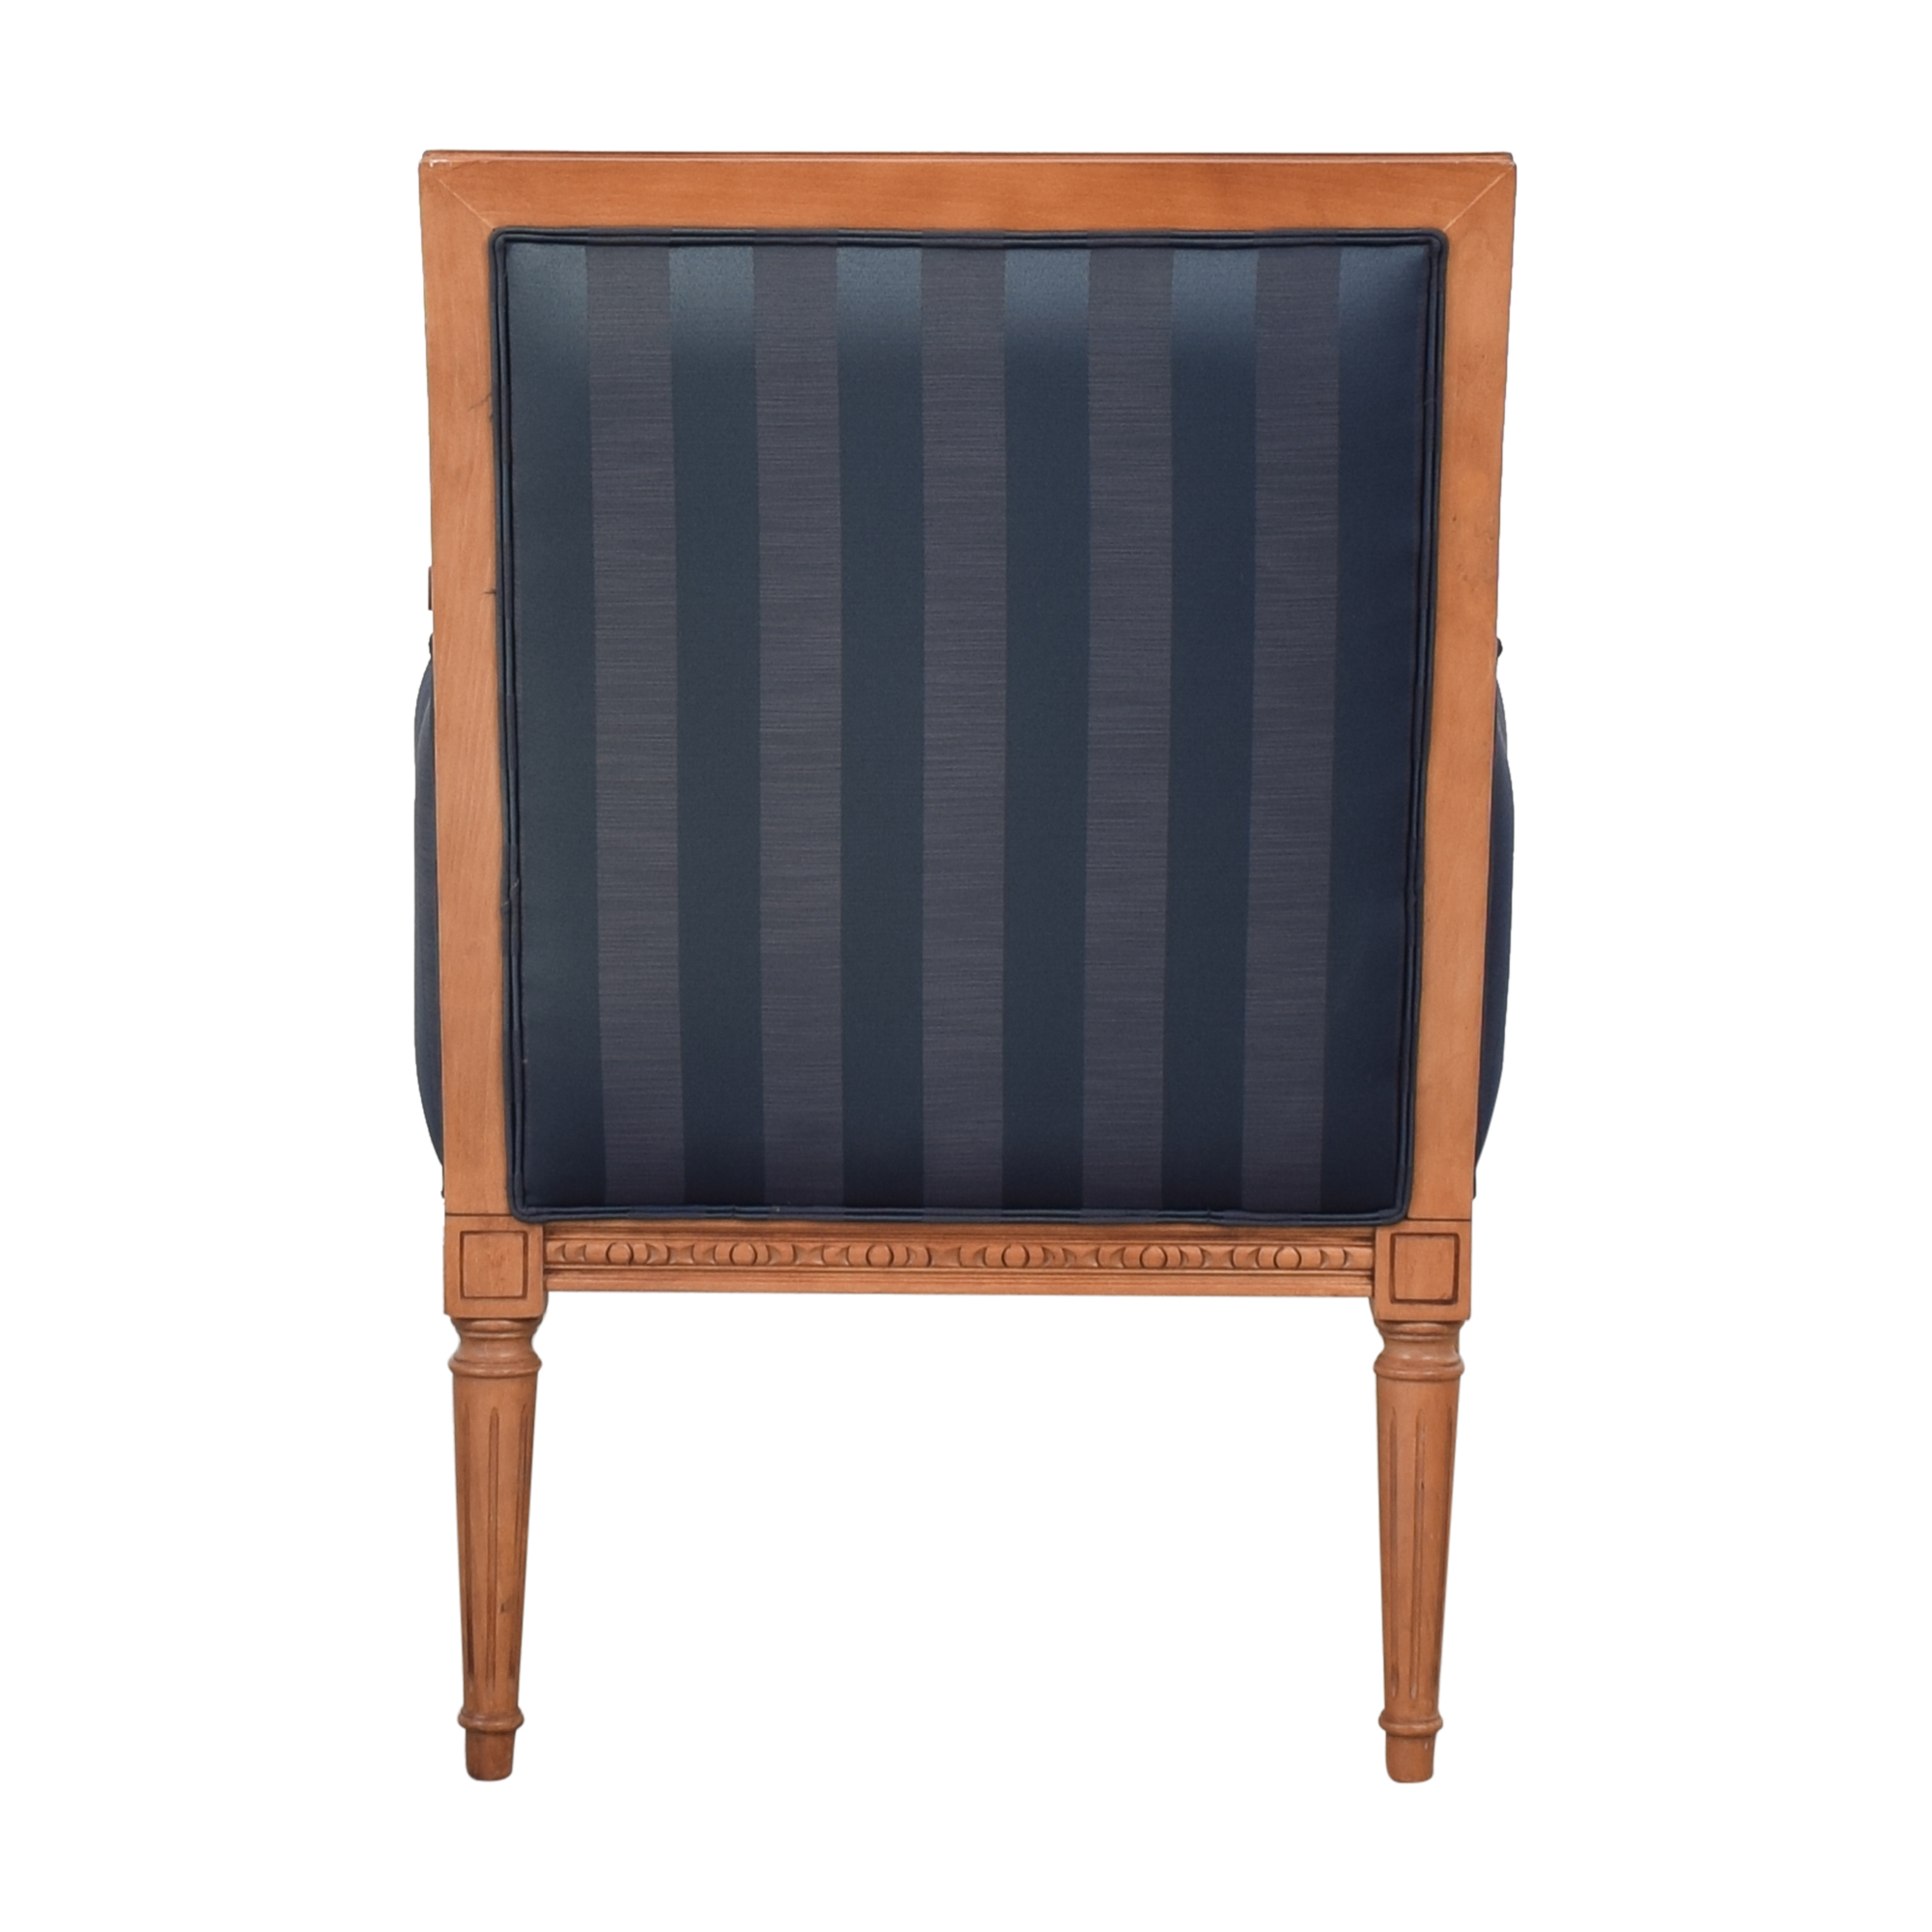 Ethan Allen Ethan Allen Gisele Chair blue and brown